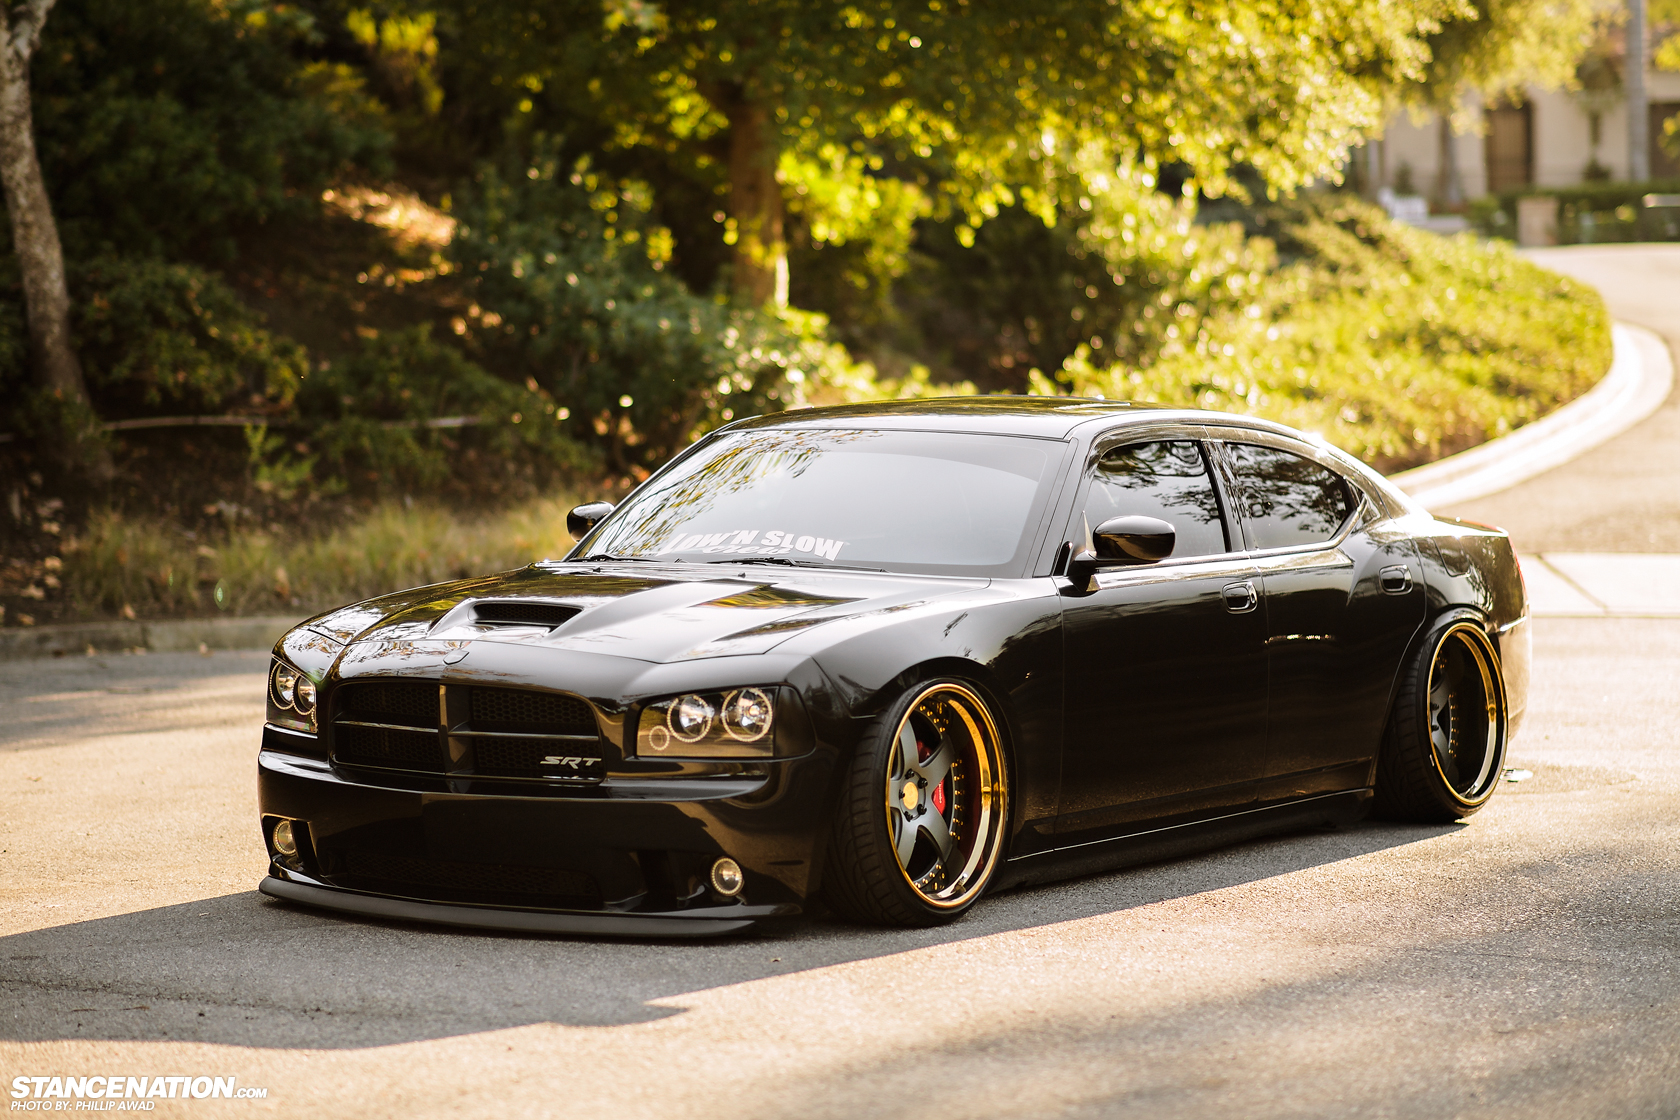 dodge charger srt8 rides low and mean autoevolution. Black Bedroom Furniture Sets. Home Design Ideas